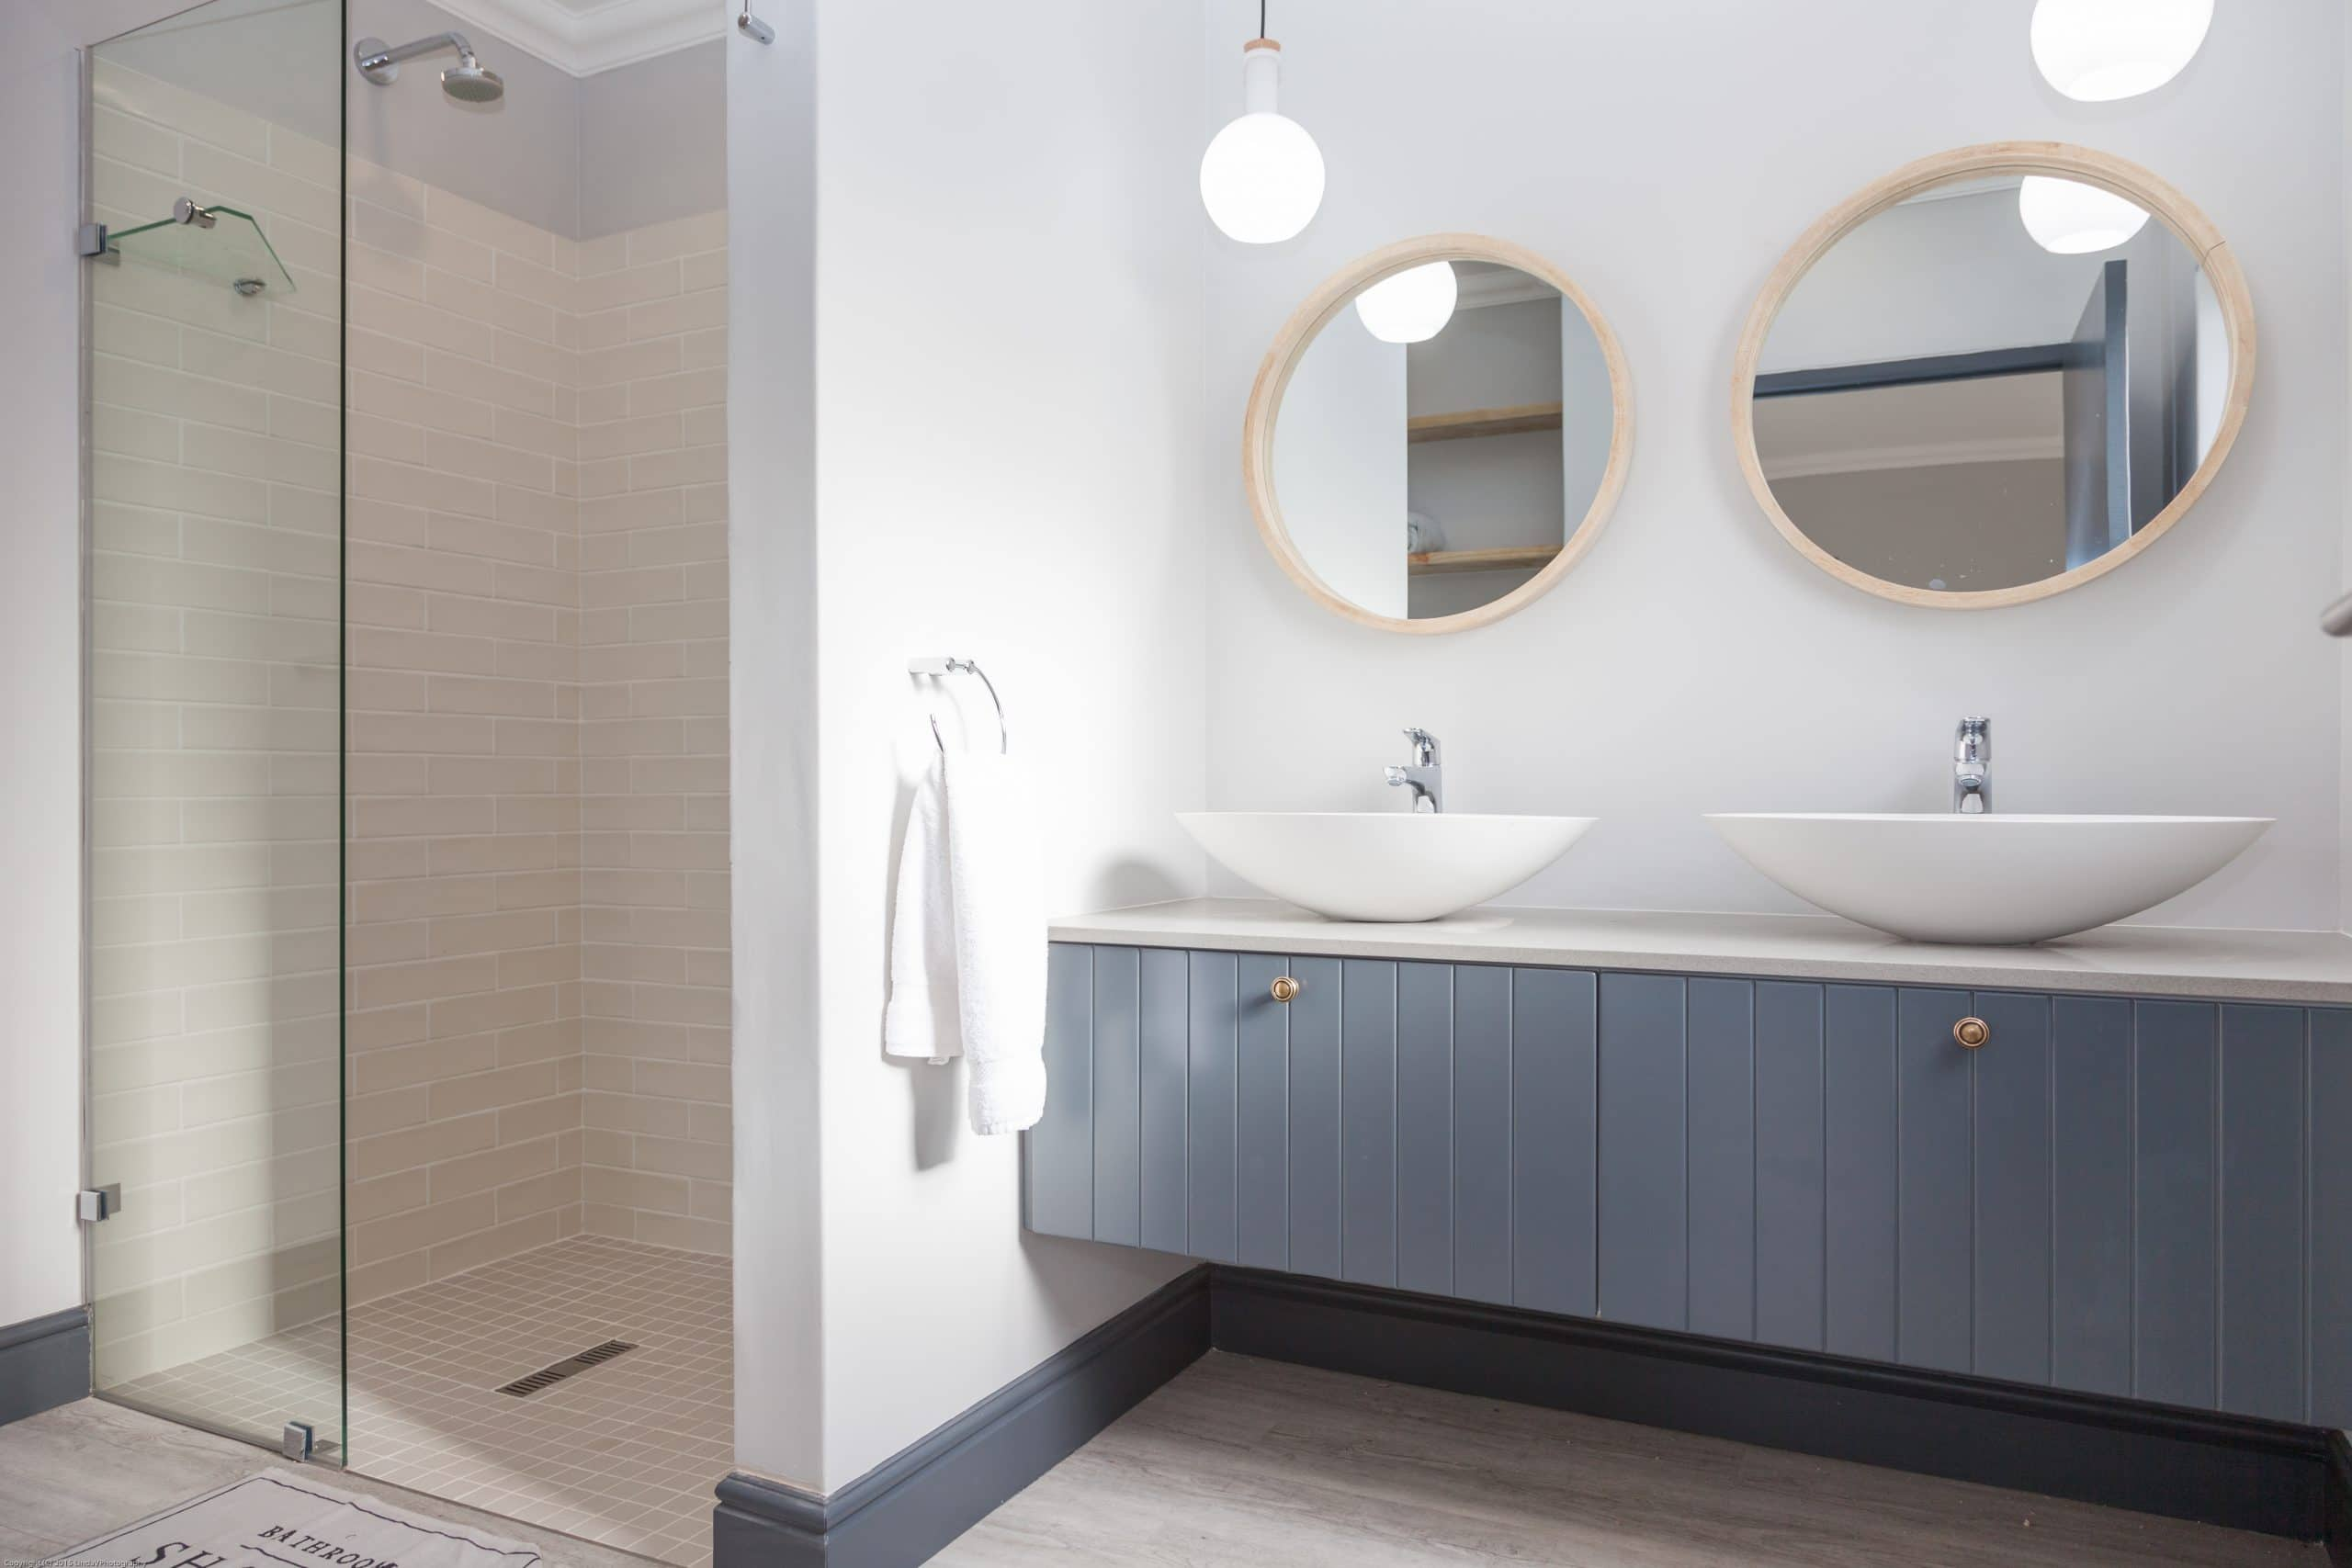 farm style modern bathrooms langebaan crontech consulting architecture